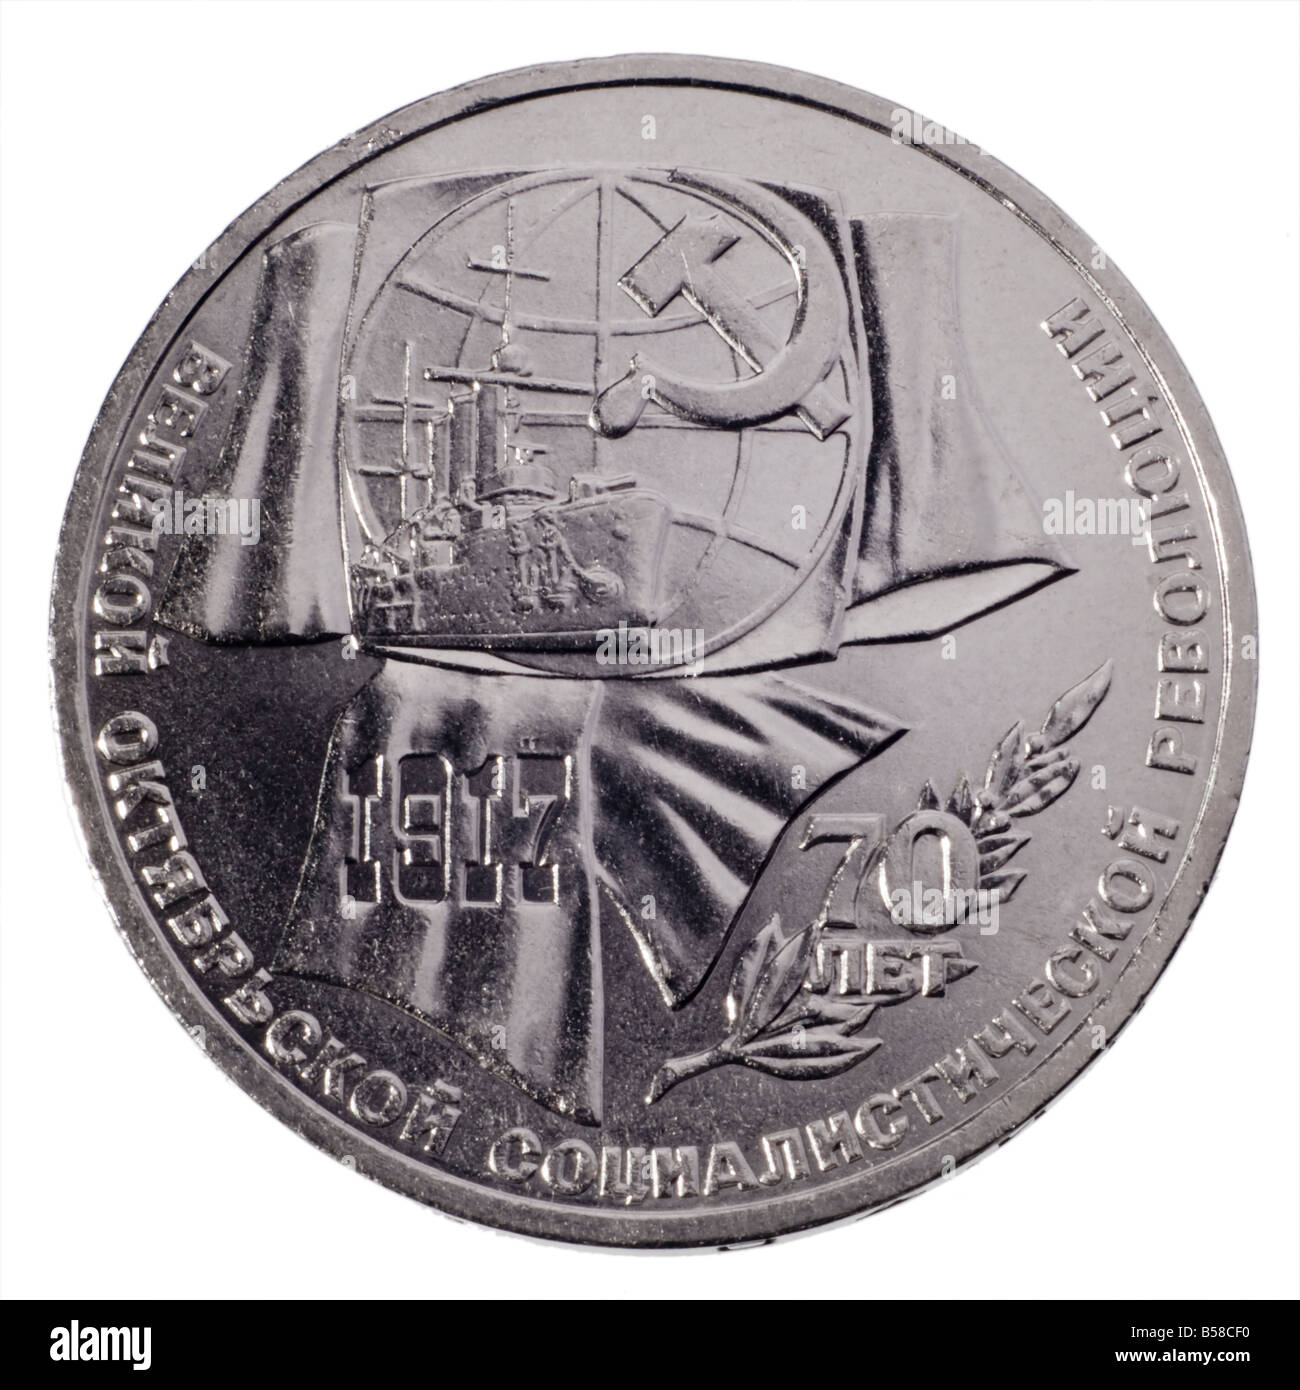 1 Ruble Coin USSR 70TH Anniversary of The October Revolution 1917 CCCP Coin